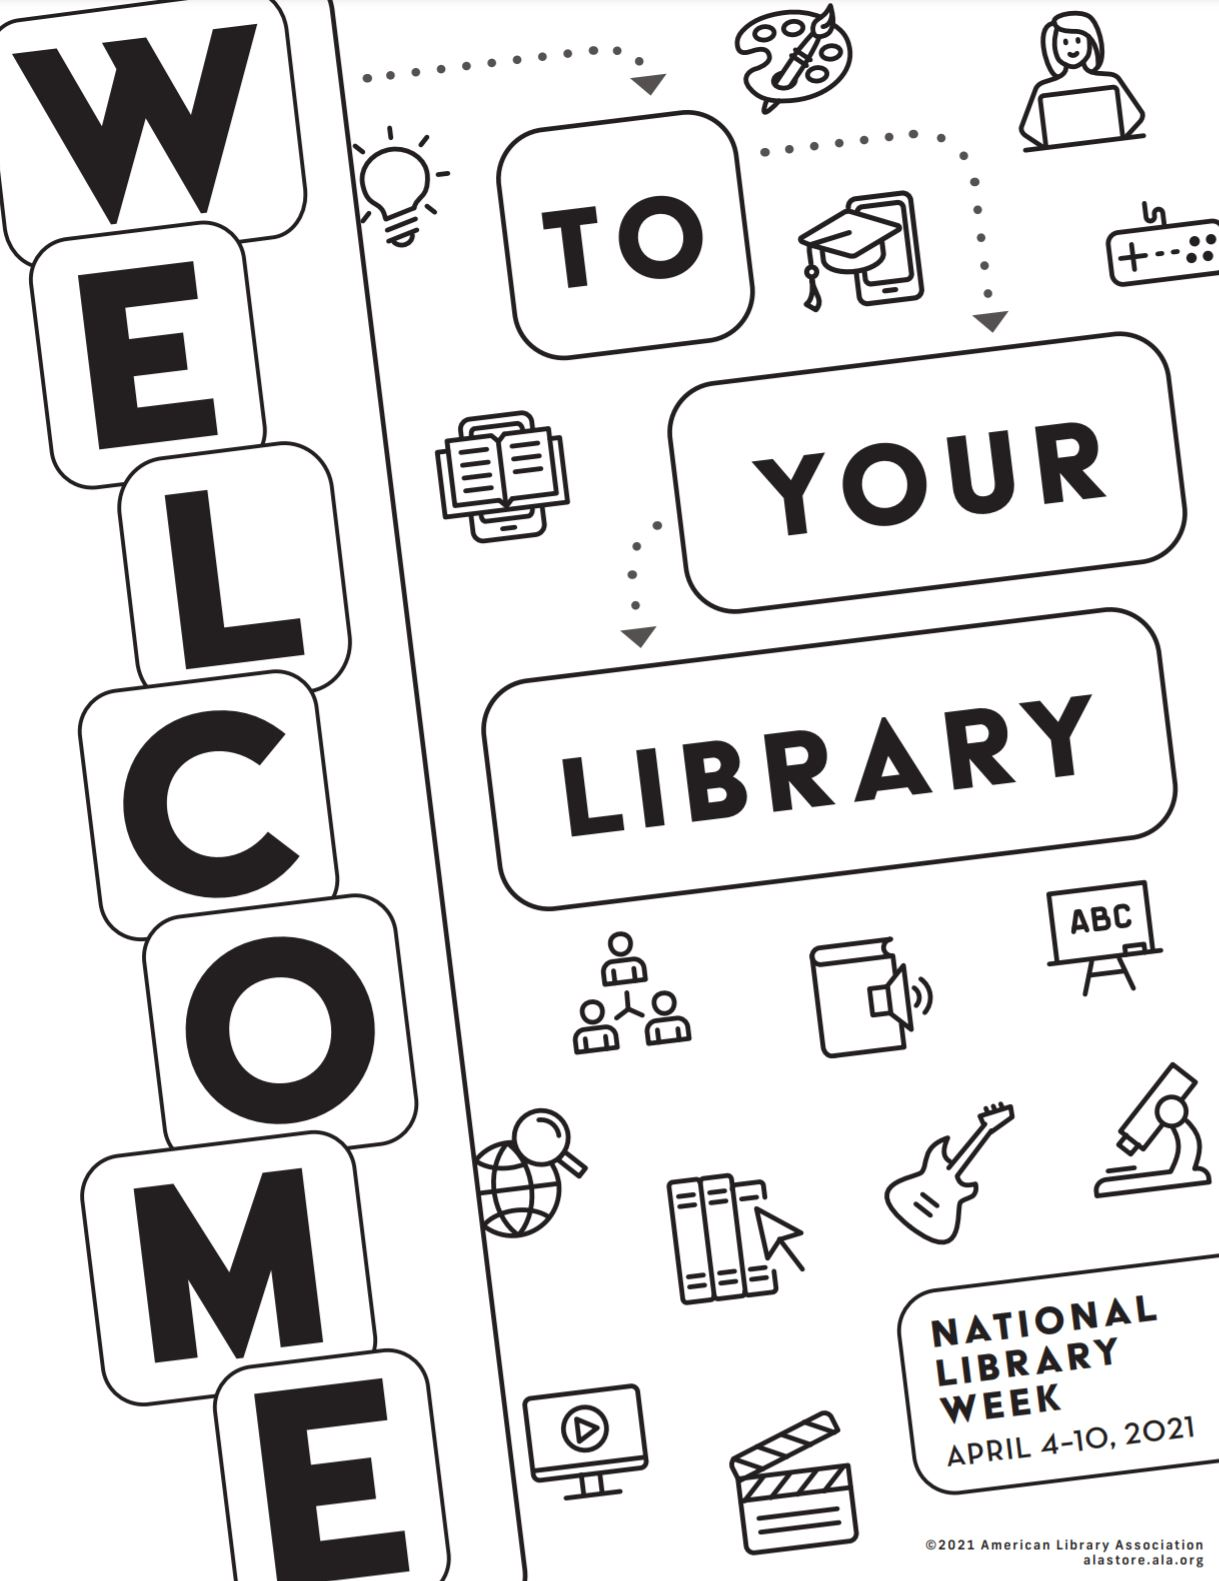 Image of Welcome to Your Library Coloring Sheet